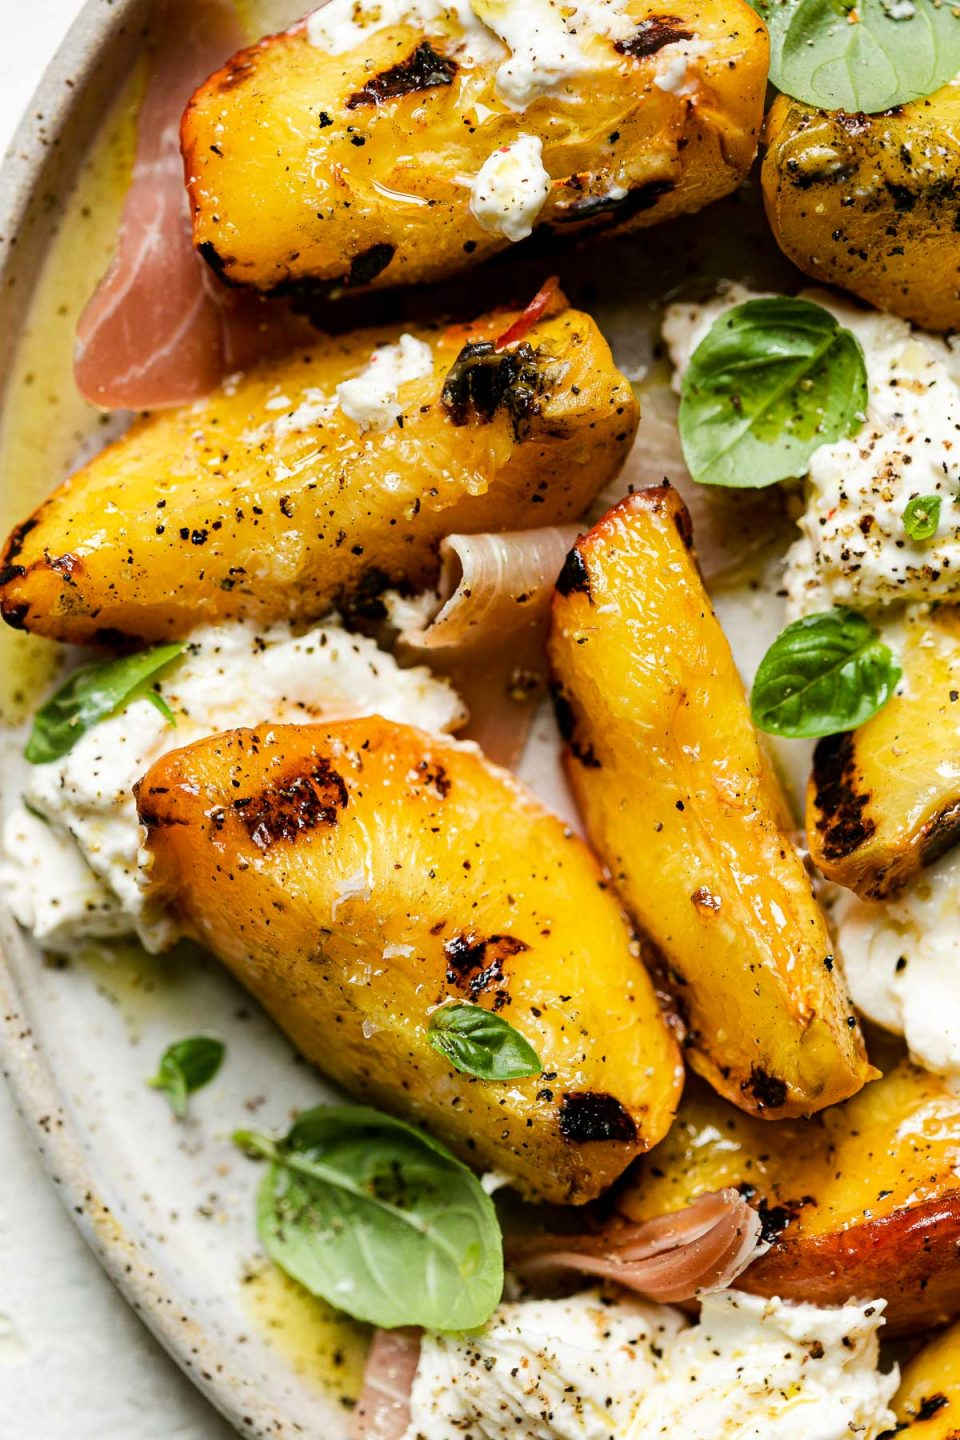 Close up of grilled peach burrata salad – grilled peaches, burrata cheese, thinly sliced prosciutto, & fresh basil leaves topped with flaky salt & freshly cracked pepper.